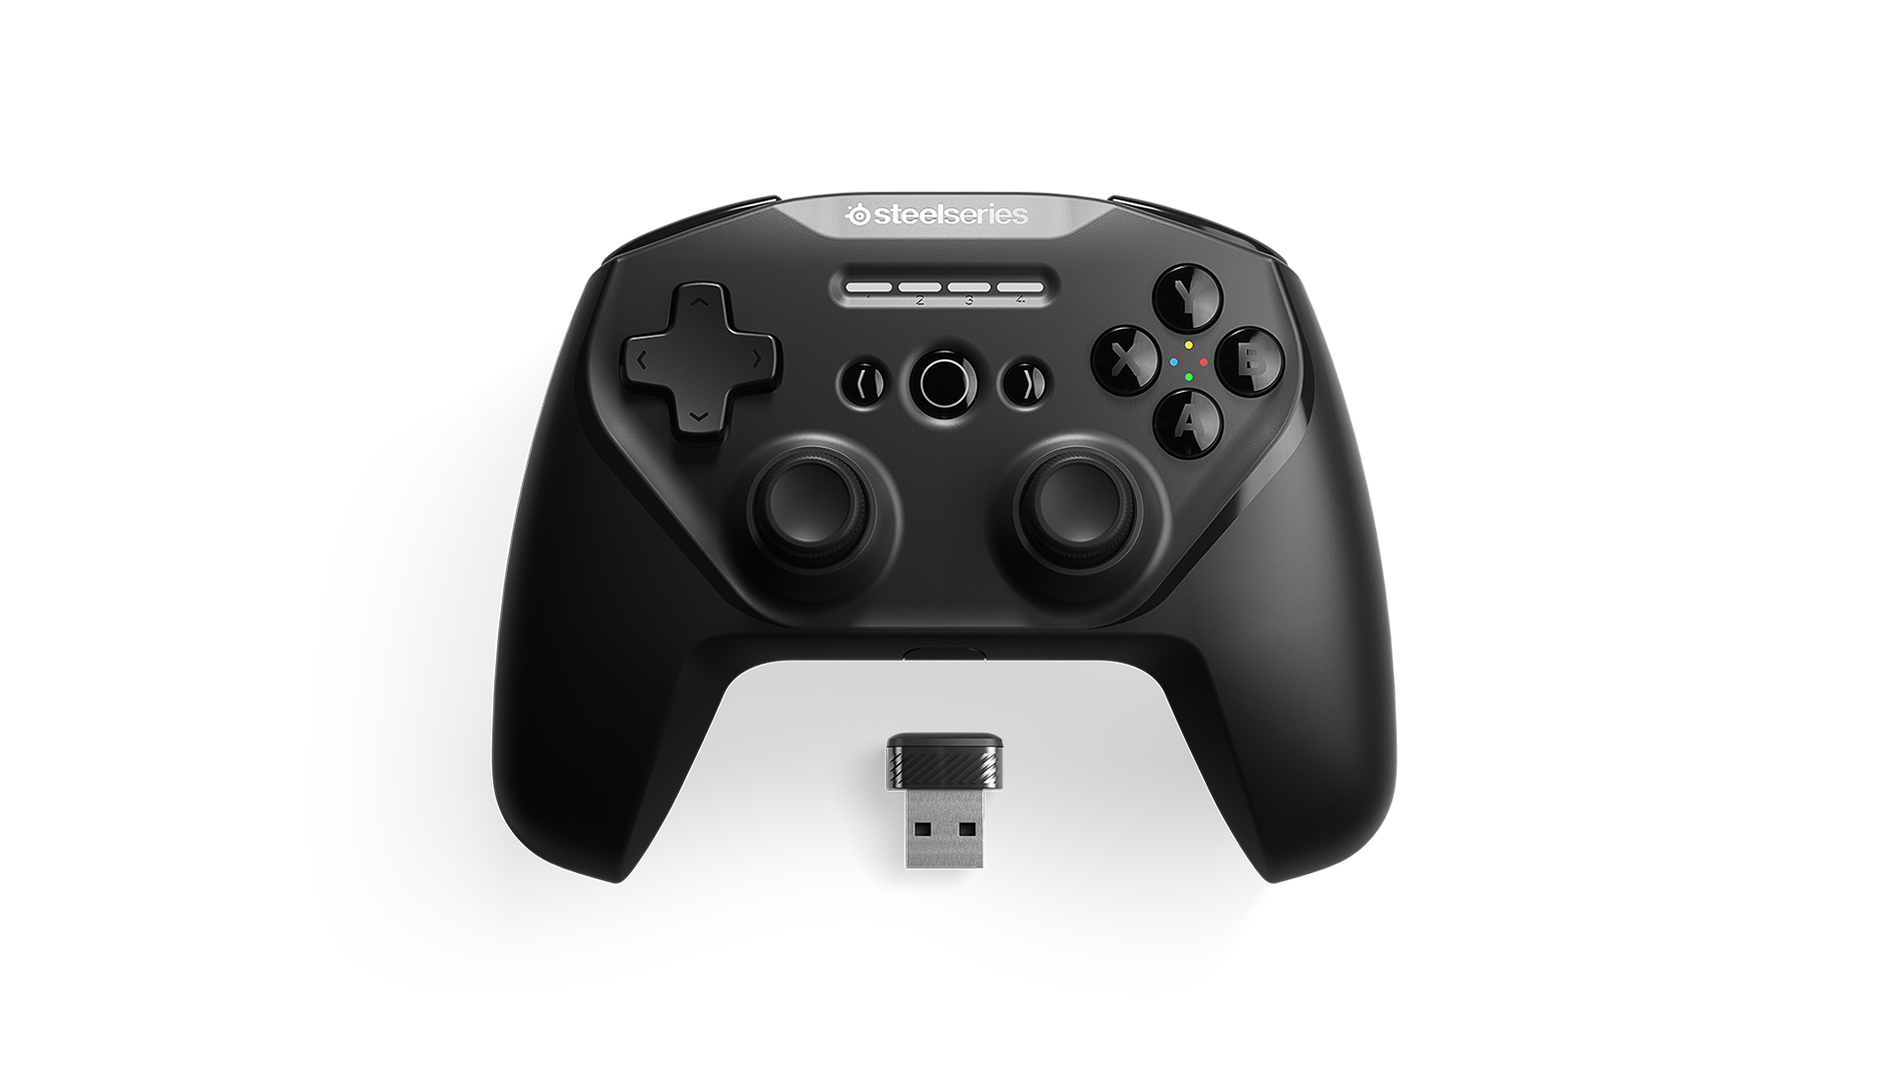 An up-close view of the Stratus Duo, the best controller option from SteelSeries for playing Scarlet Nexus.